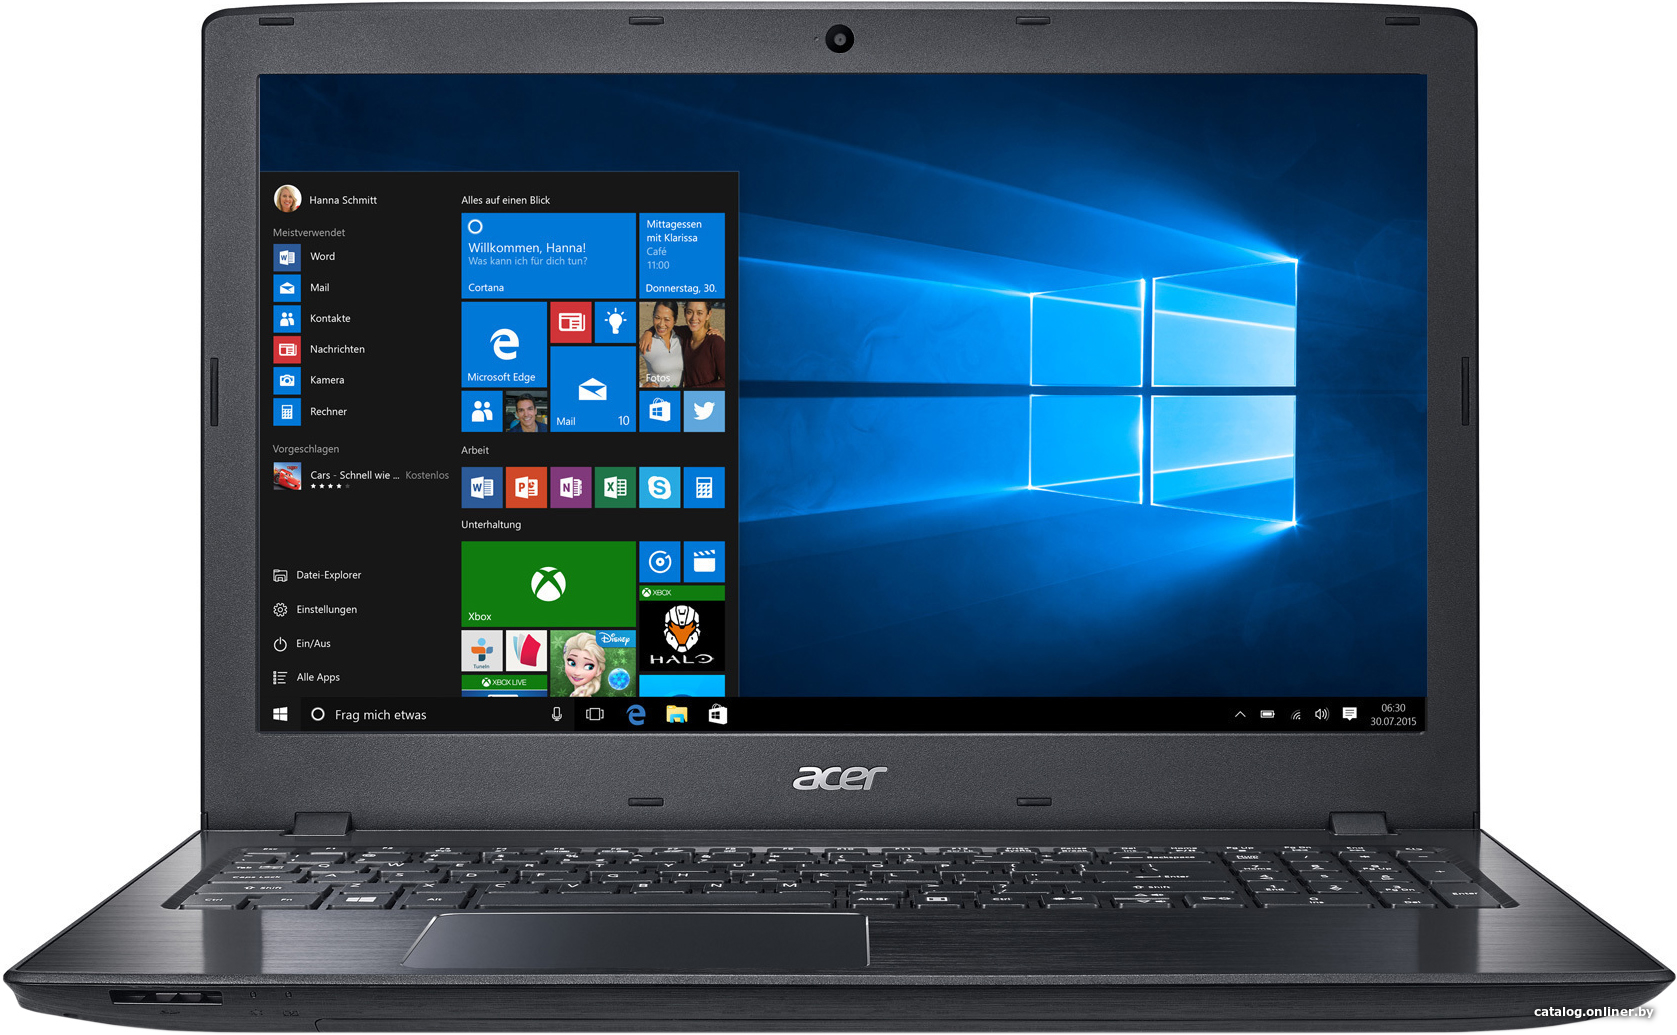 Acer TravelMate P259-MG-36VC